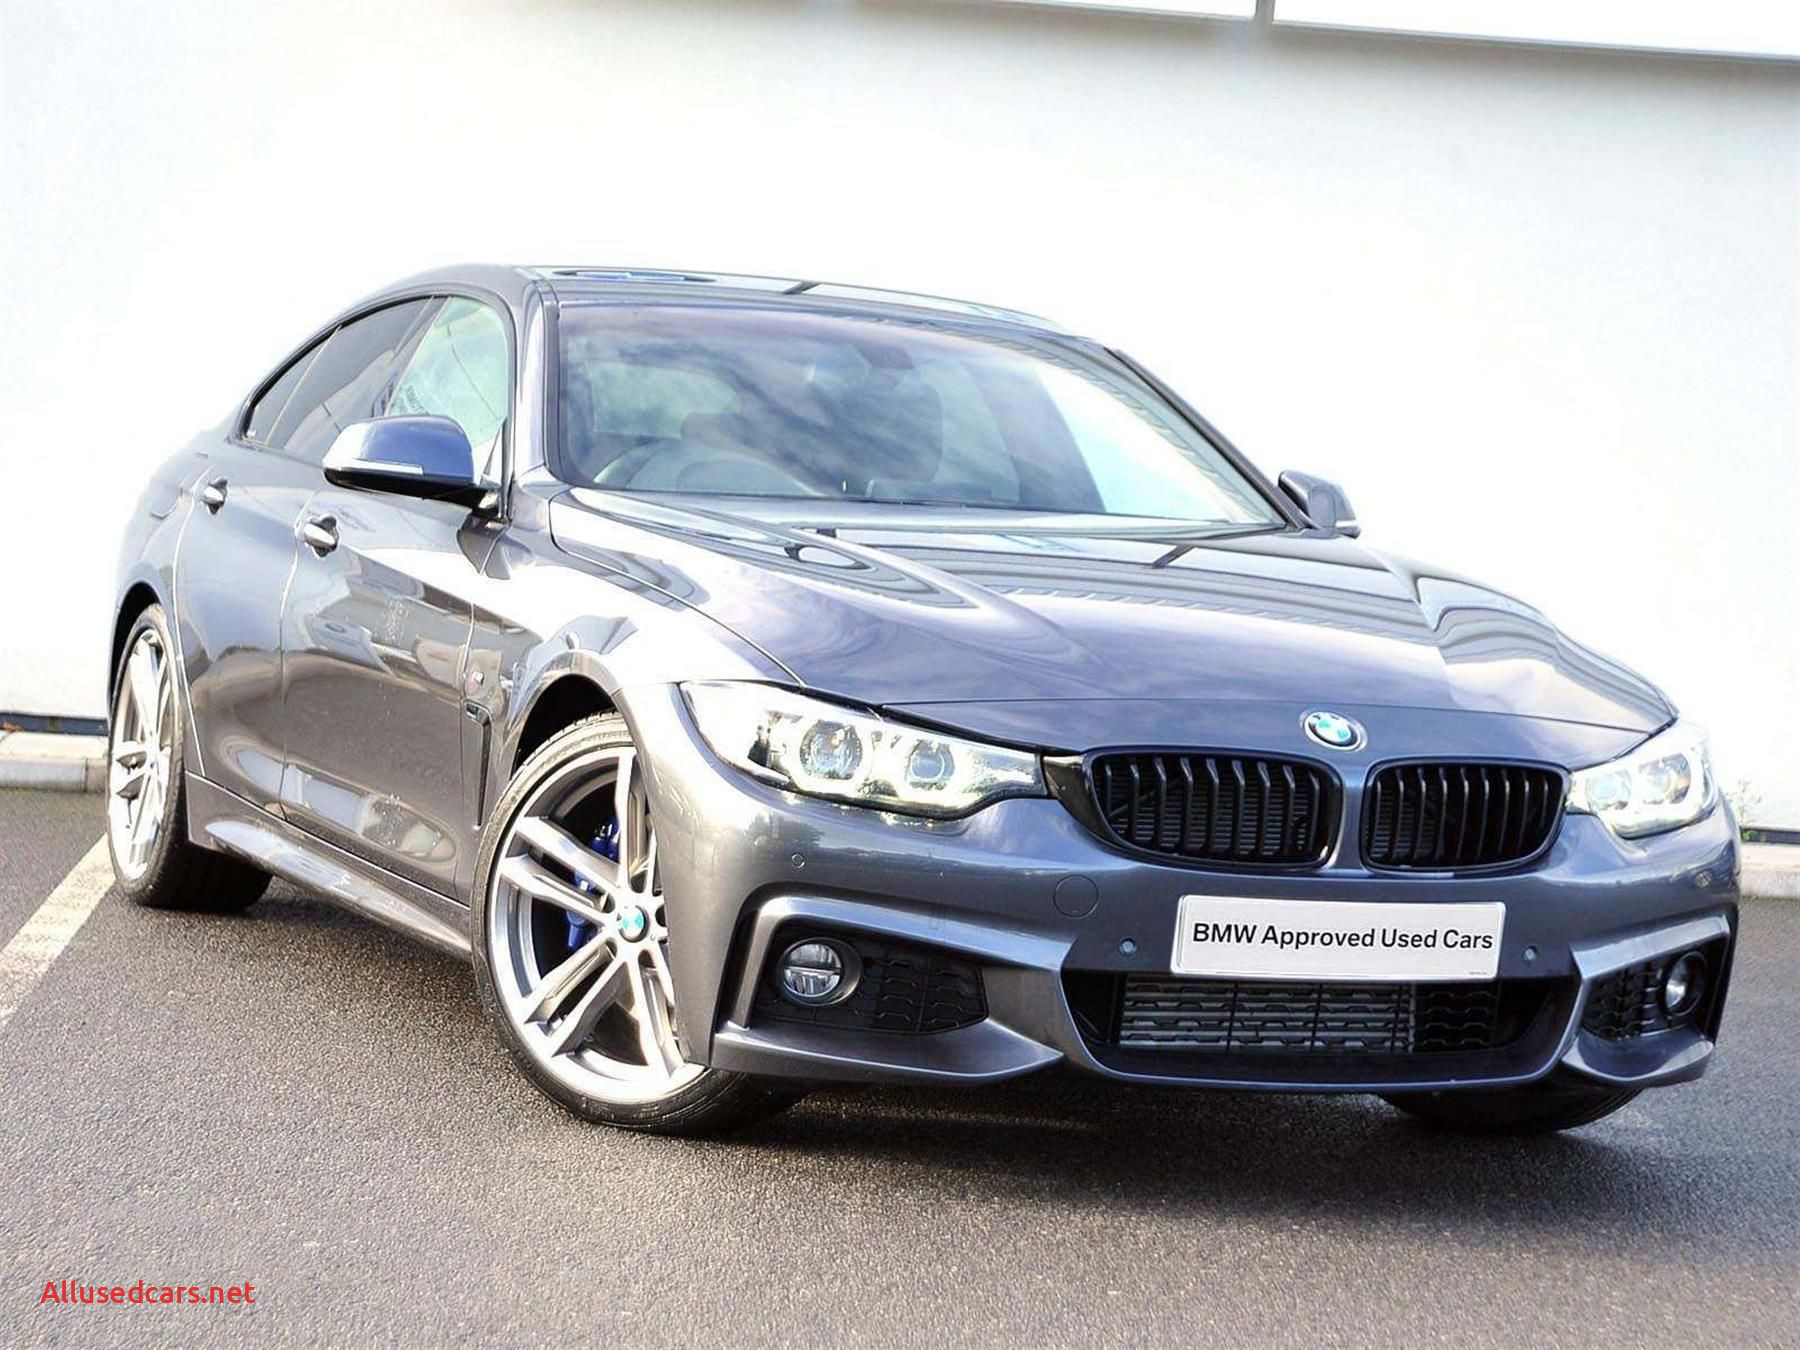 Bmw 4 Series for Sale Lovely Used Bmw Cars for Sale with Pistonheads